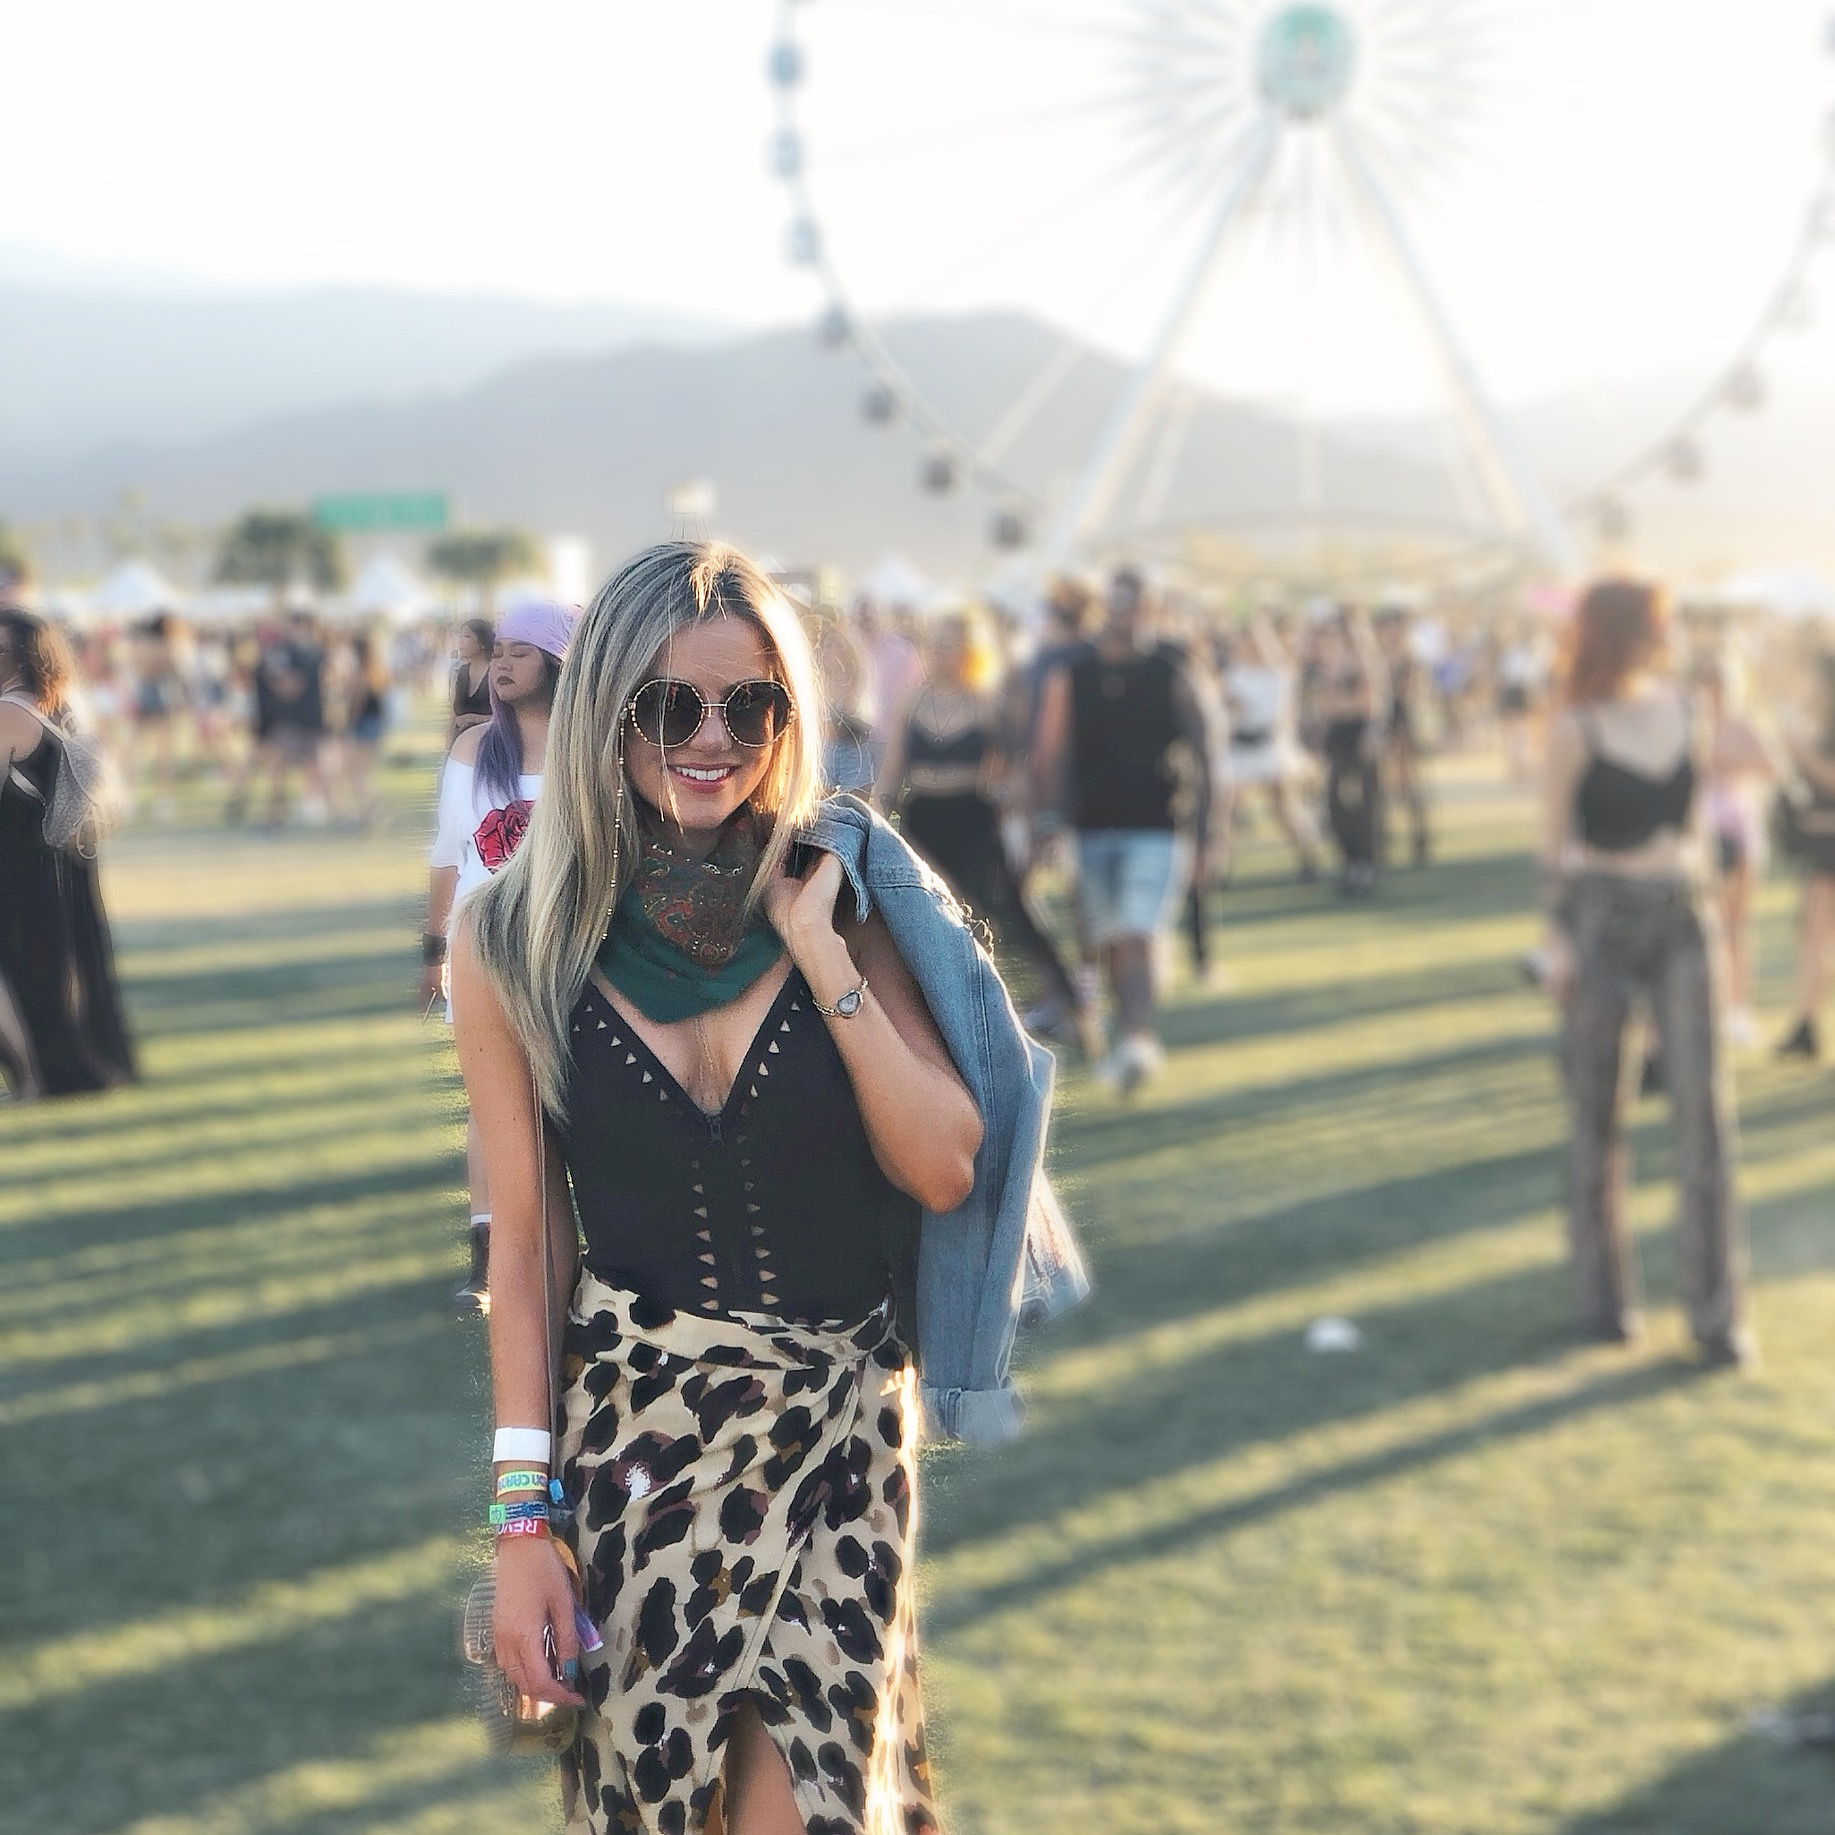 Coachella 2019 - The Fashion & How to Thrive